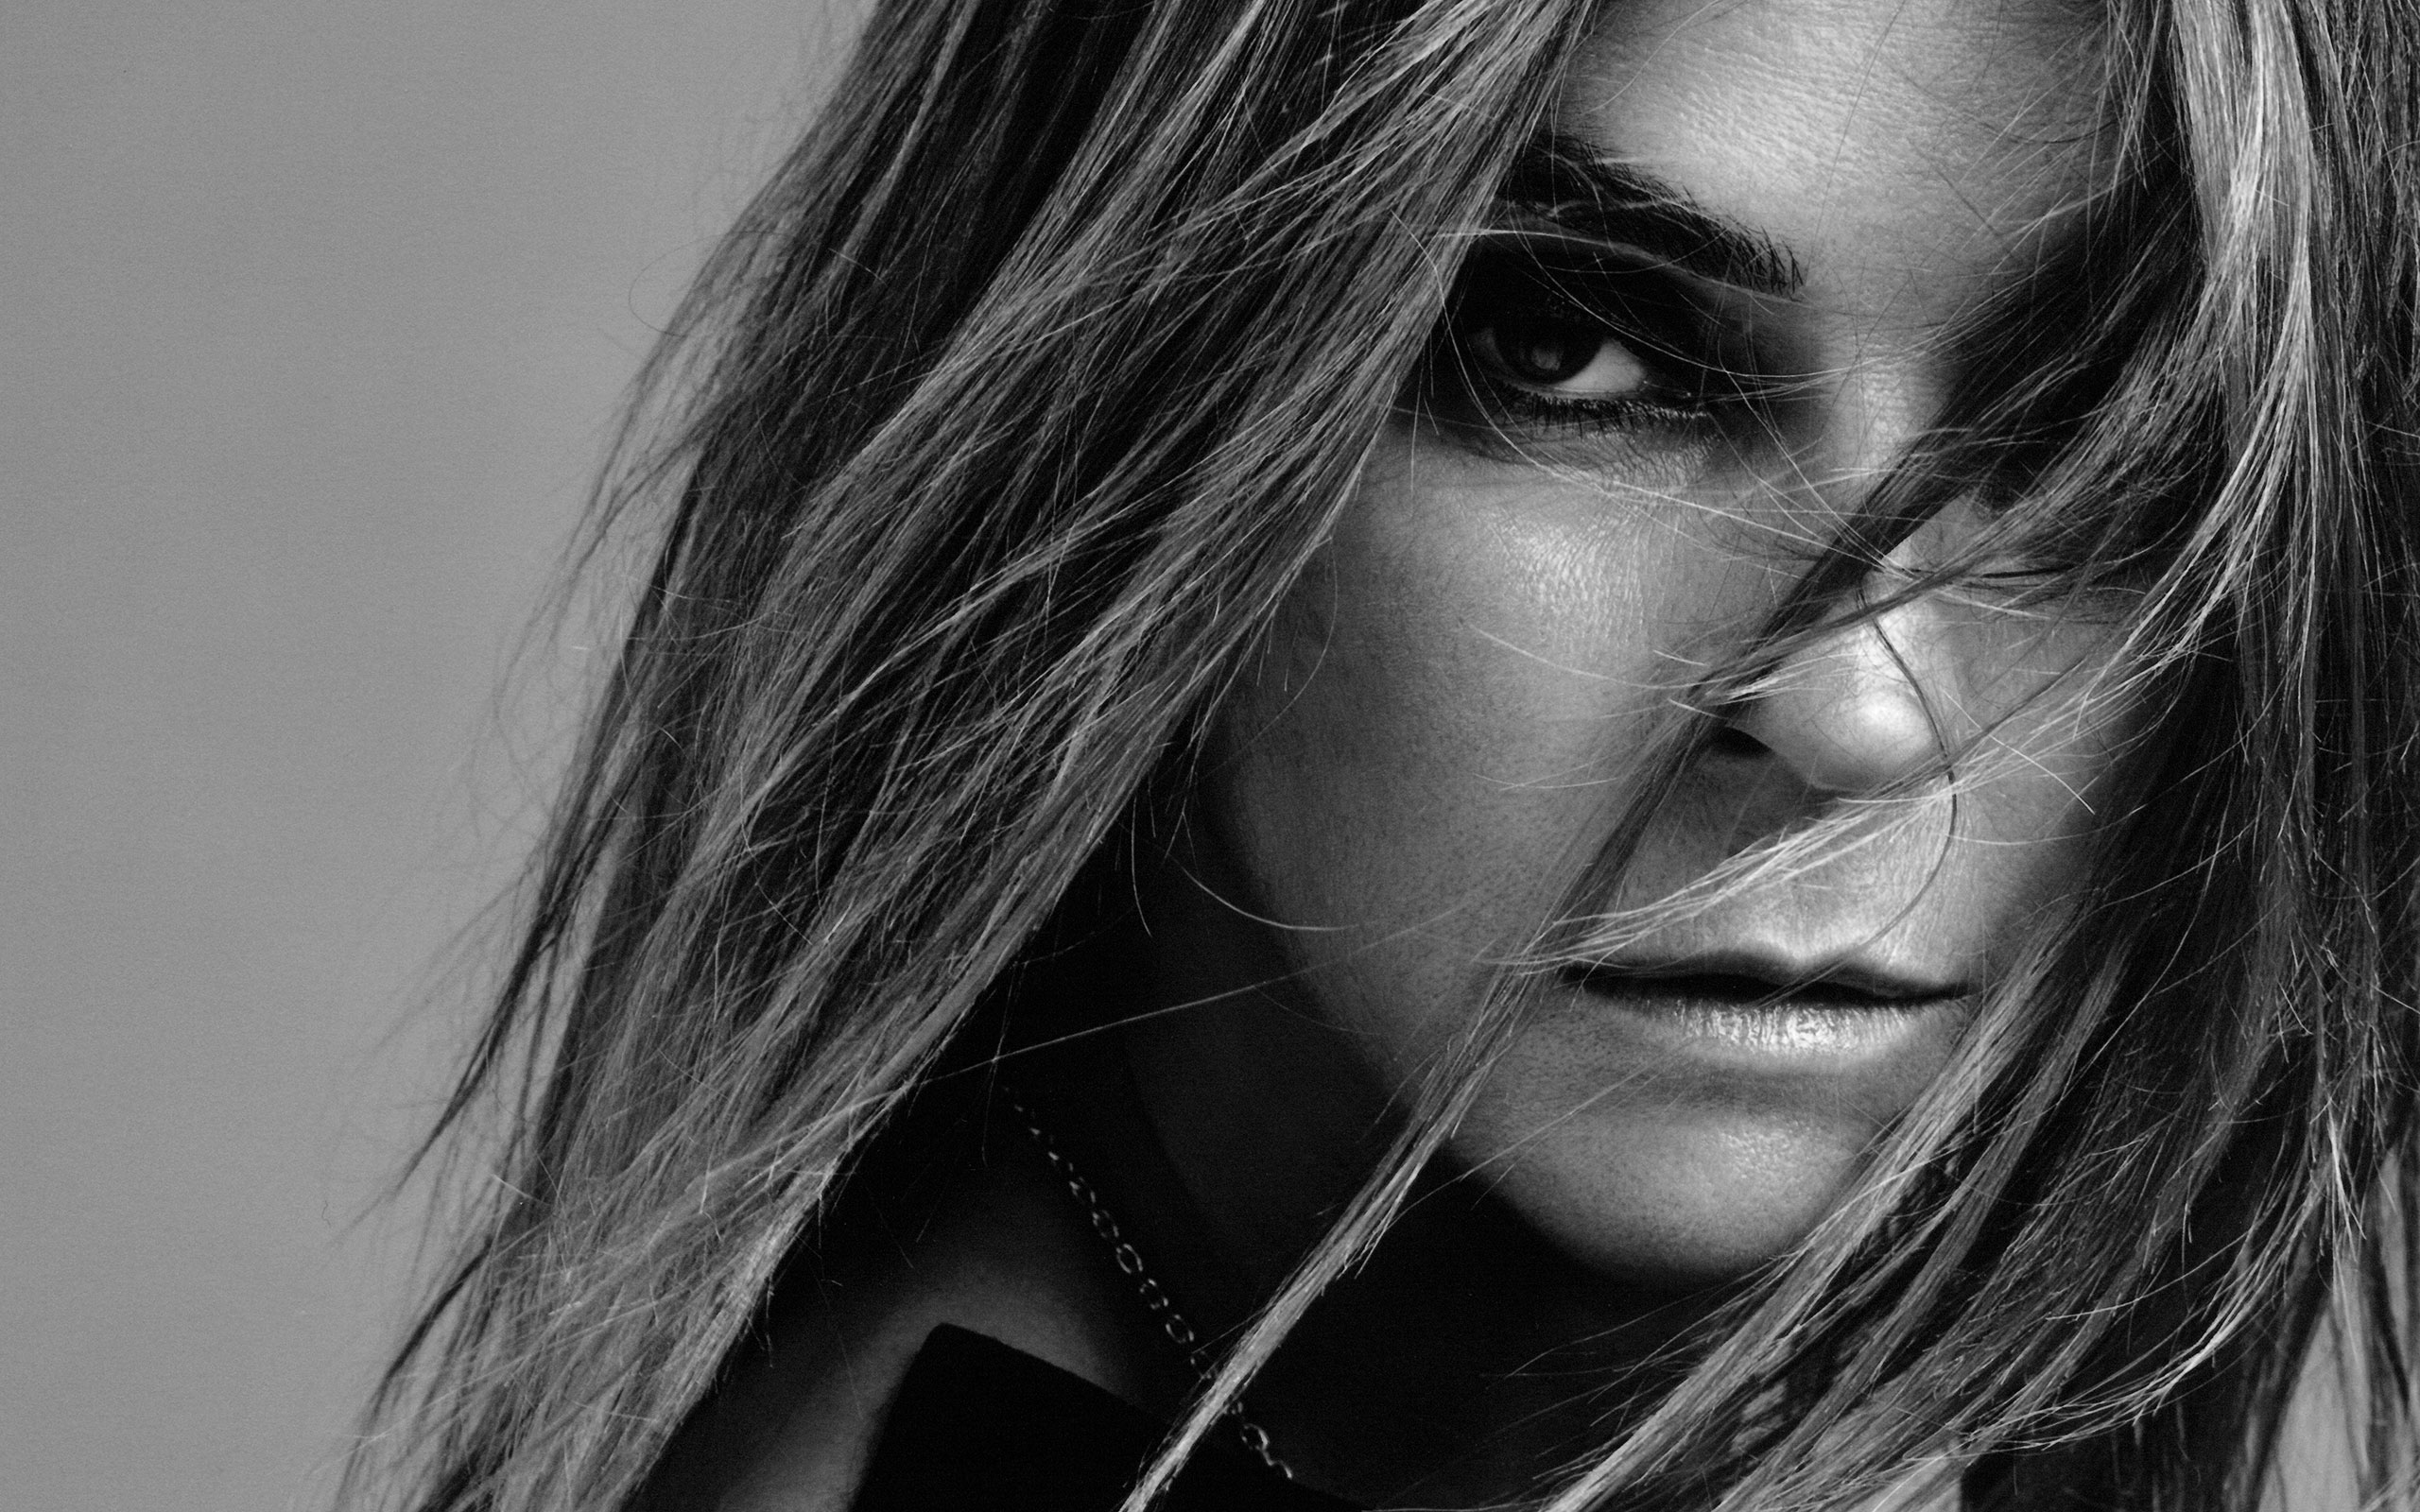 Interview with Carine Roitfeld